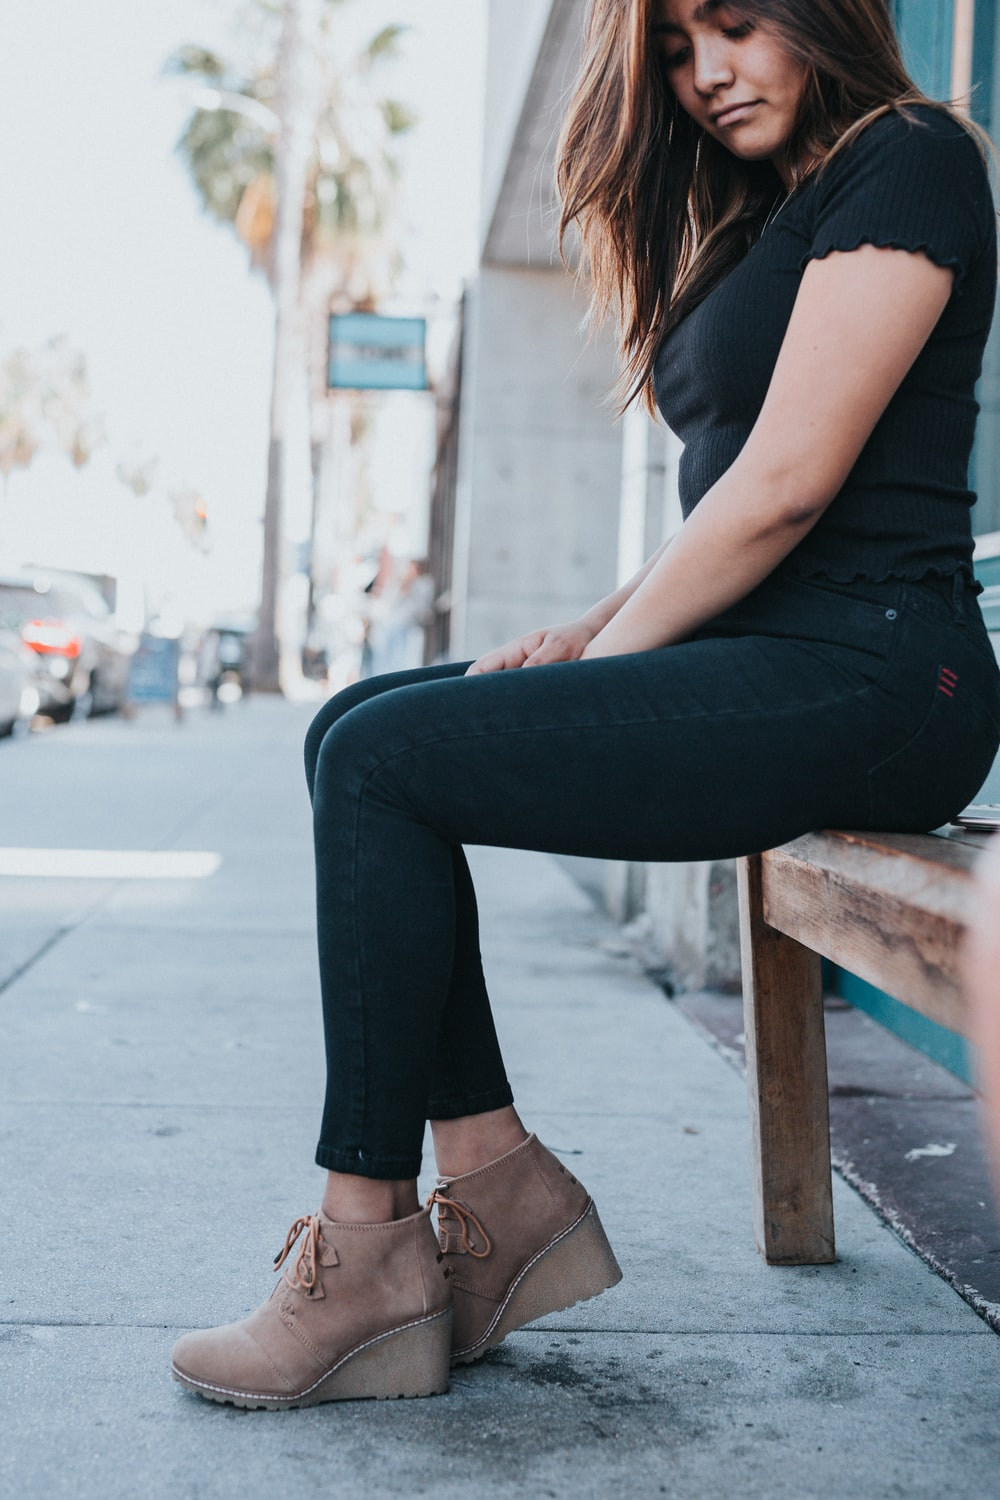 woman in black t-shirt and black pants sitting on brown wooden bench during daytime